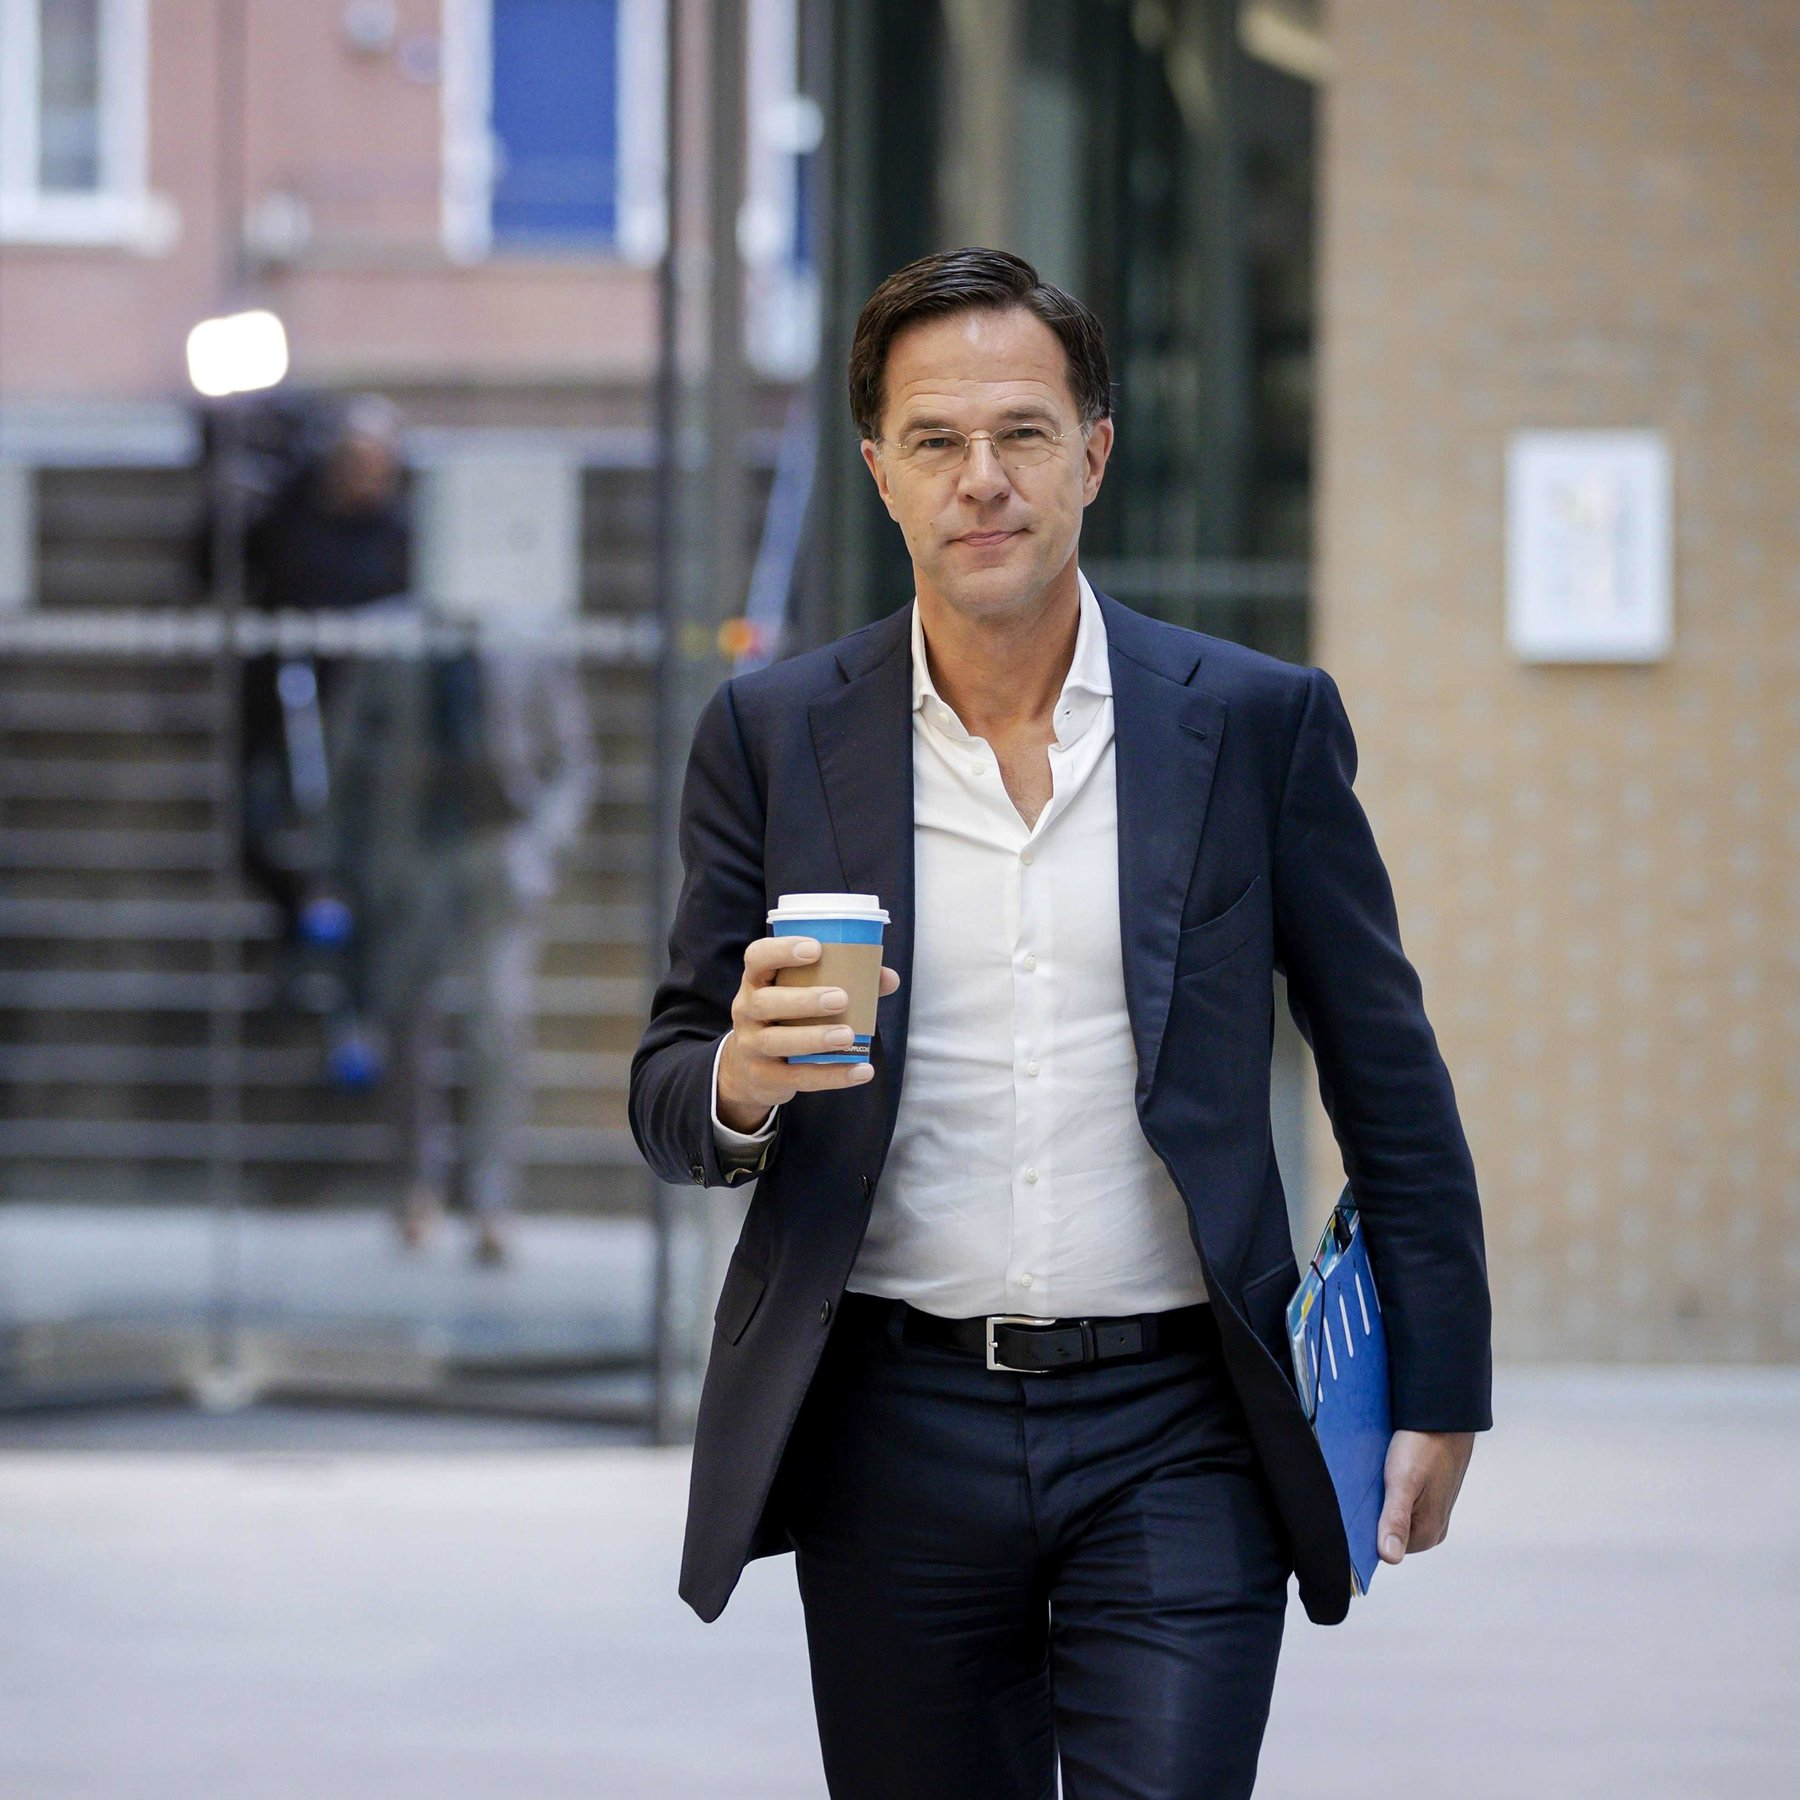 dutch leader offers a sober contrast in